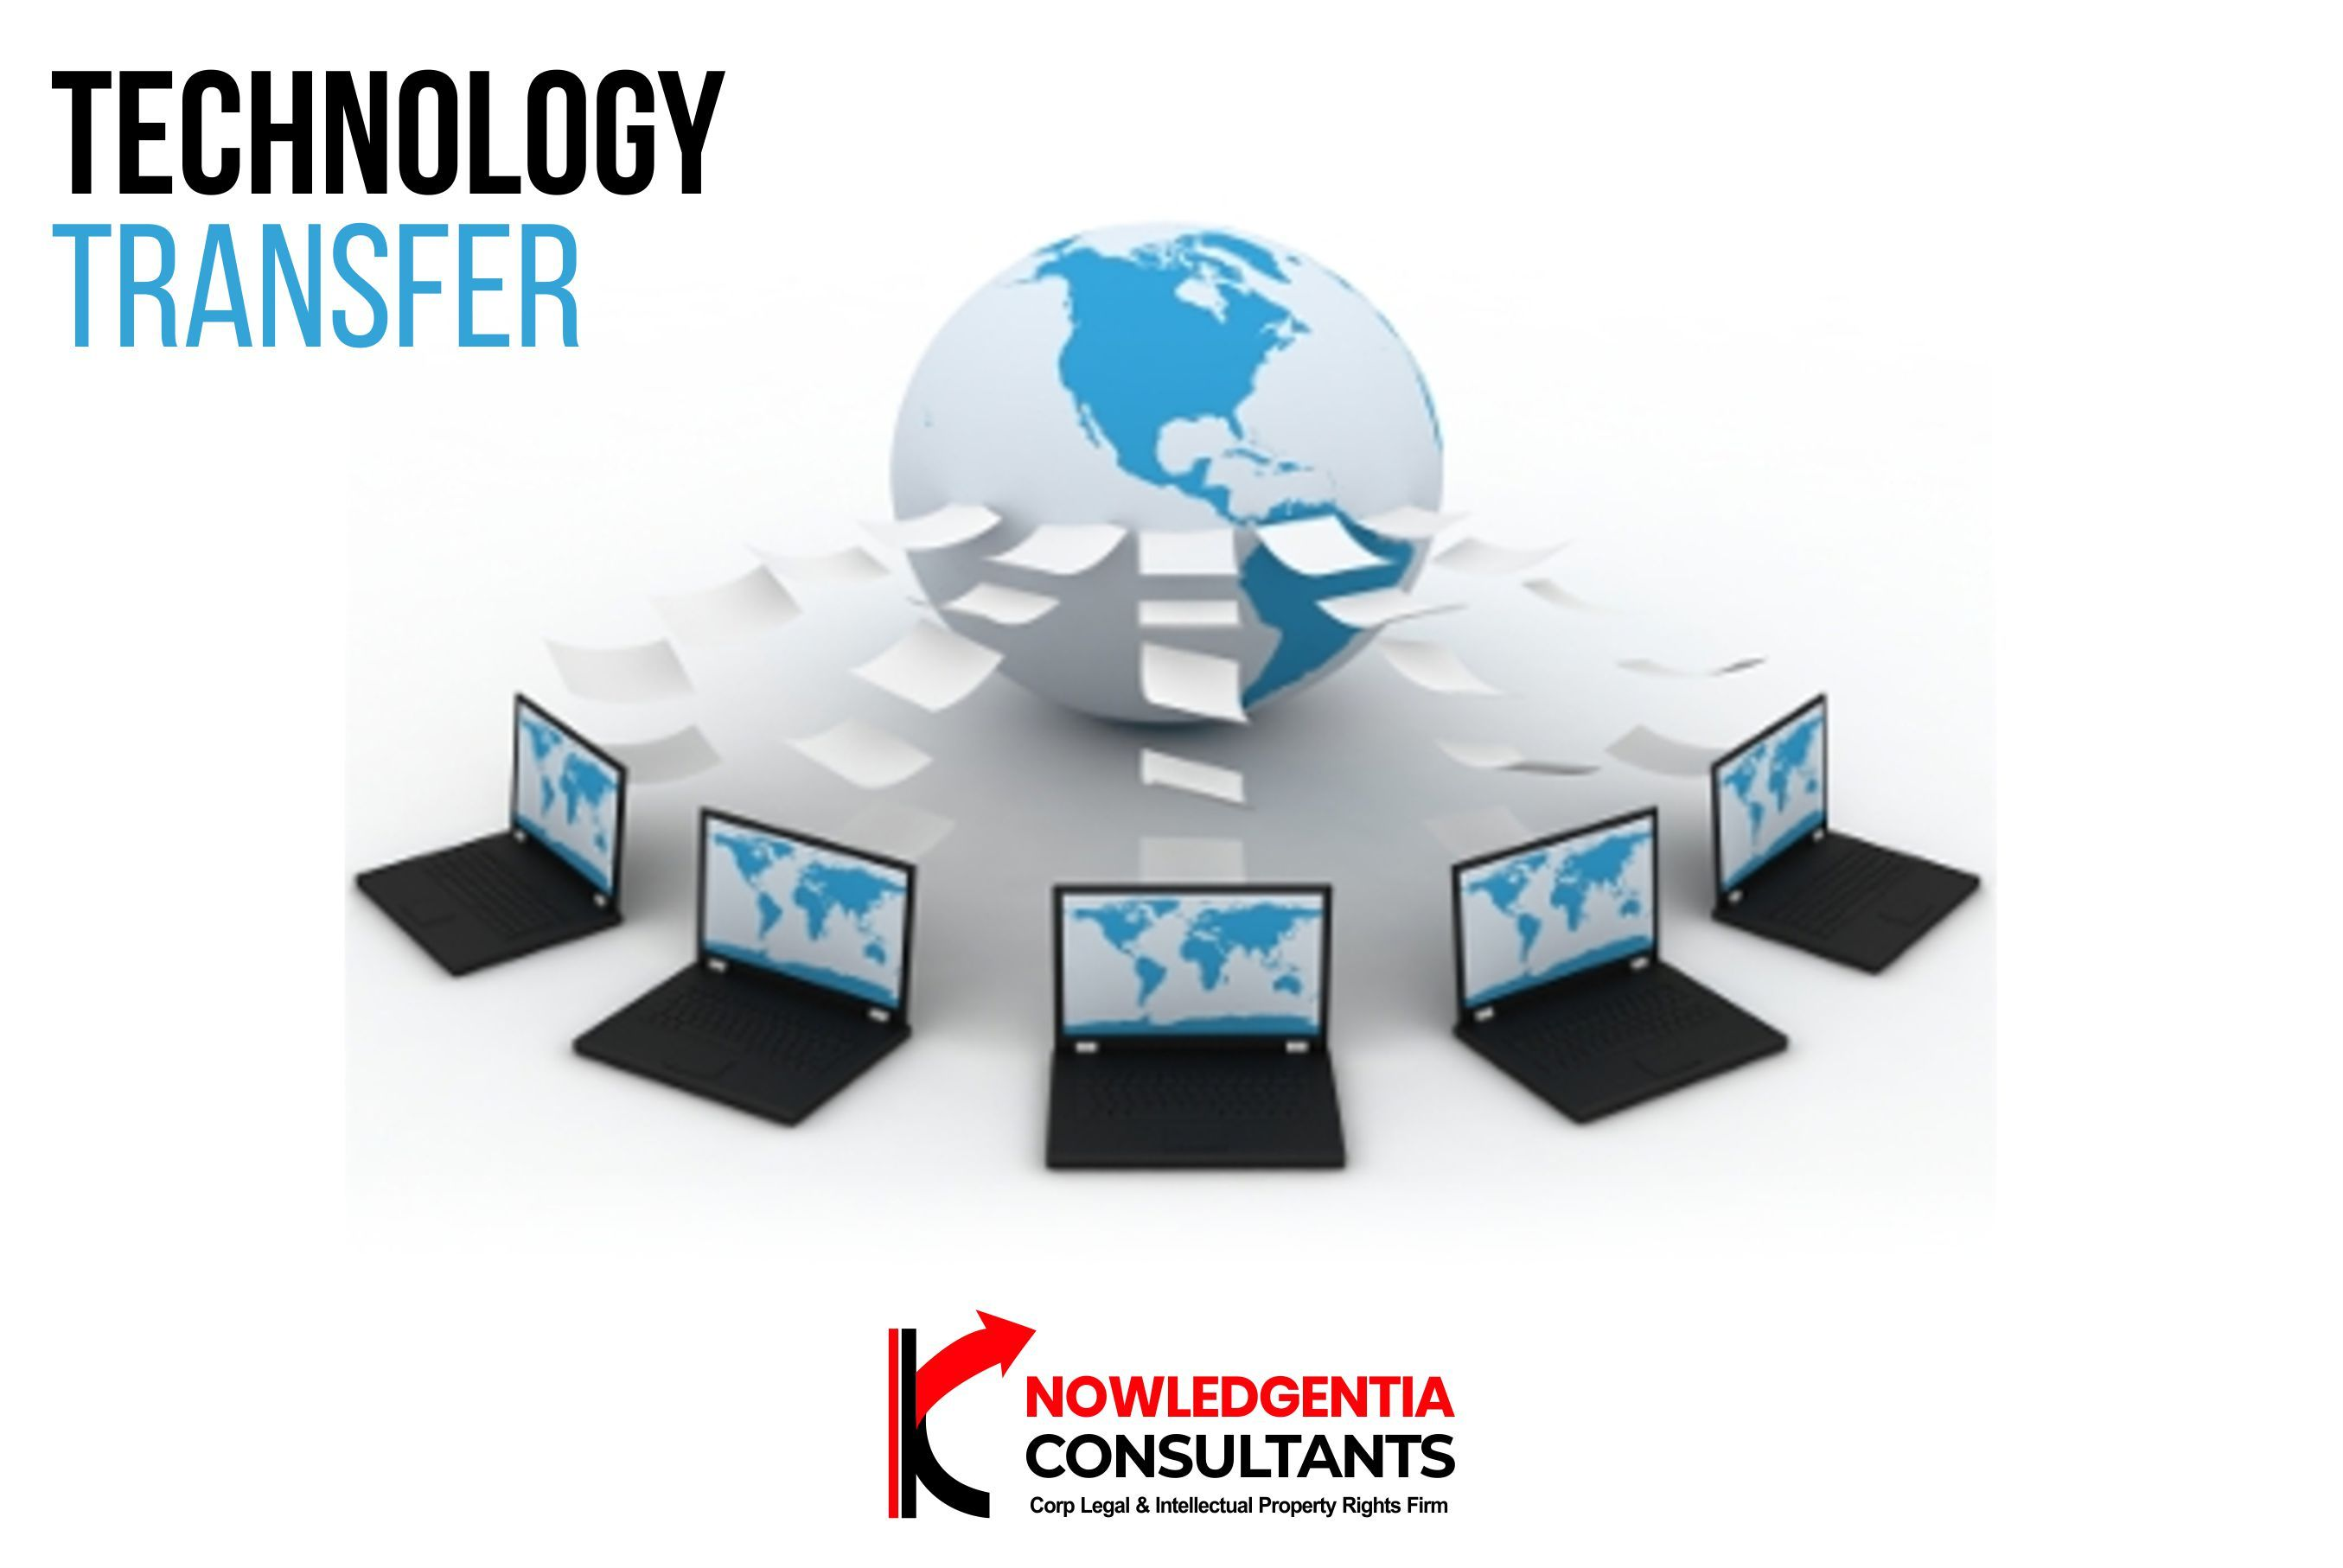 Knowledgentia Consultants Provide The Services Of Technology Transfer In India Our Team Members Include Indu With Images Technology Transfer Technology Immersive Learning